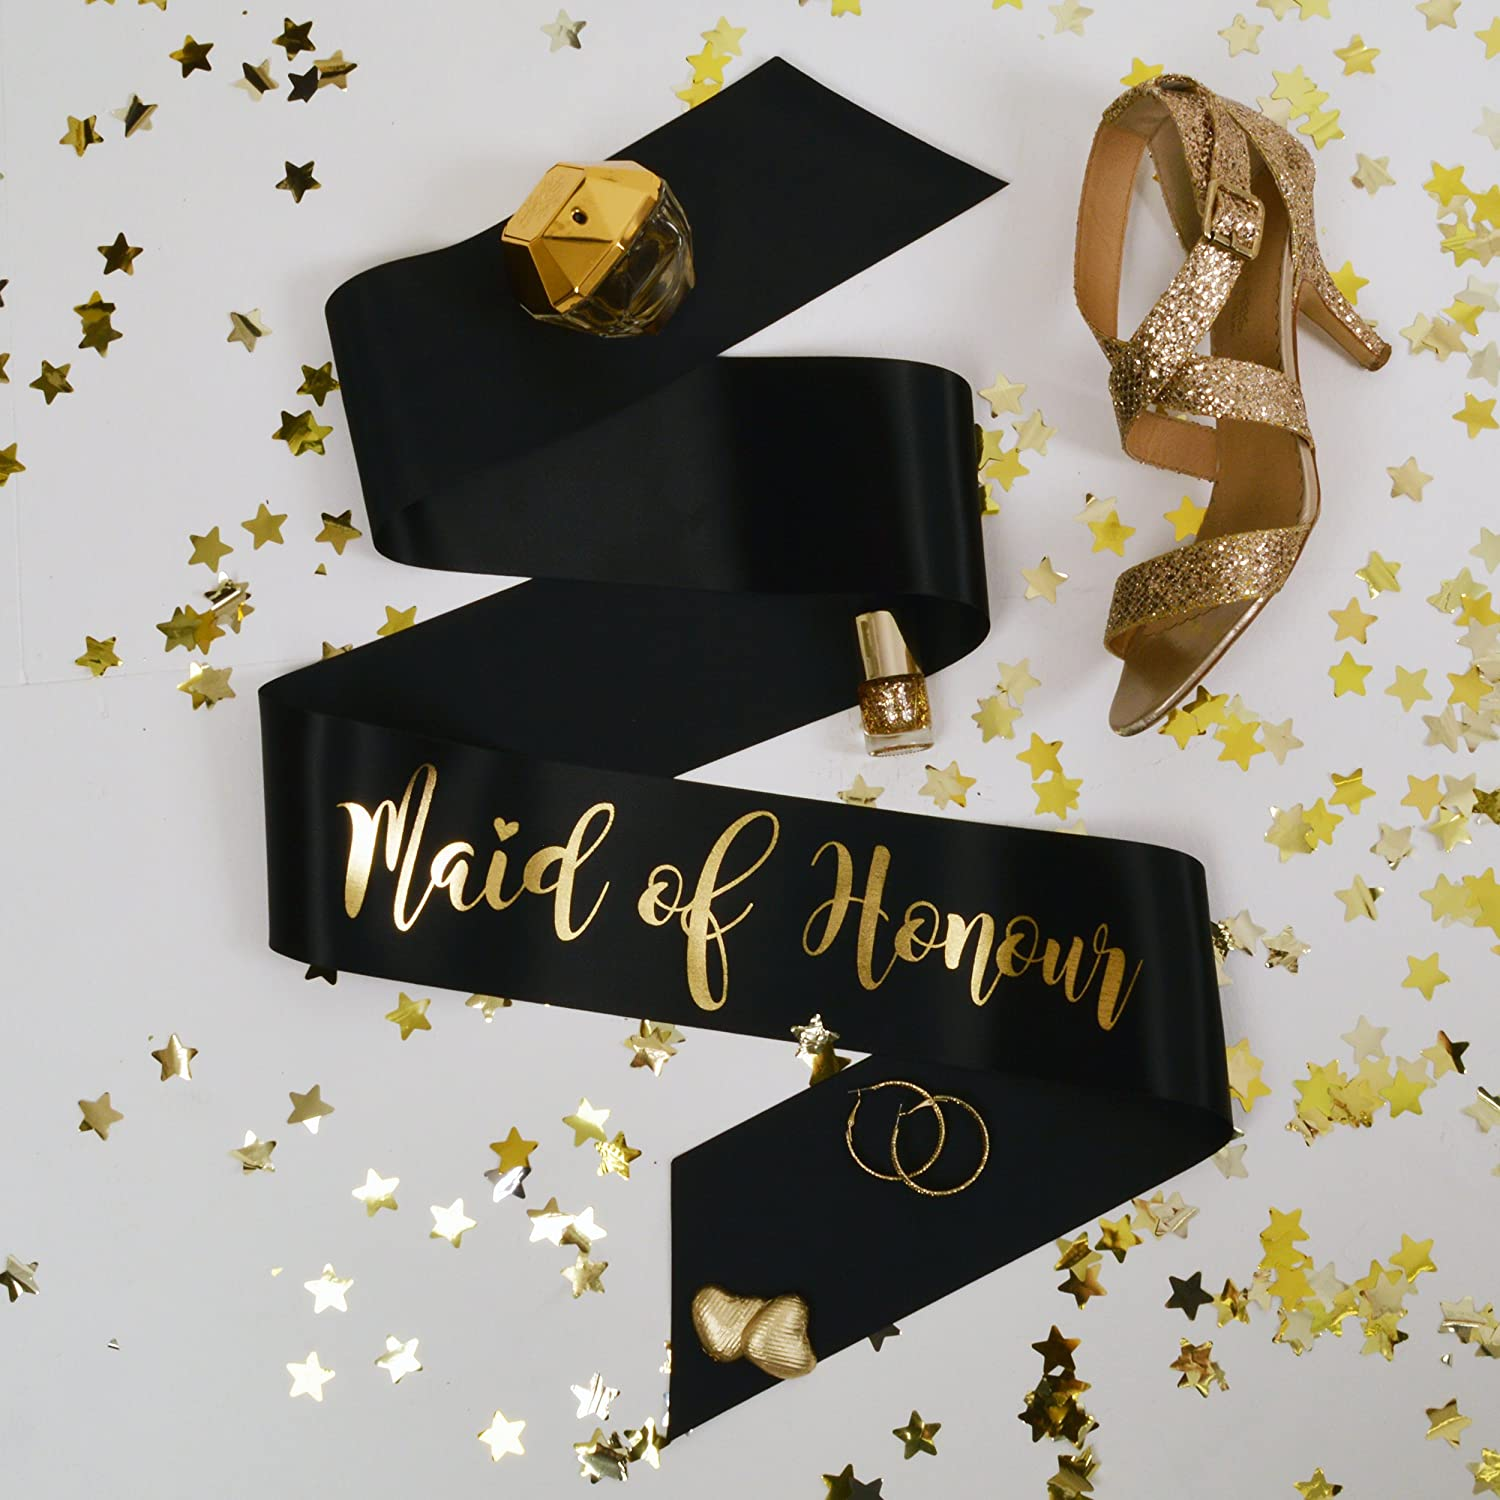 All Tied Up UK Ltd - Maid of Honour Hen Party Sash - Black and Gold Classy Hen Party Sashes - Team Bride Hen Party Range